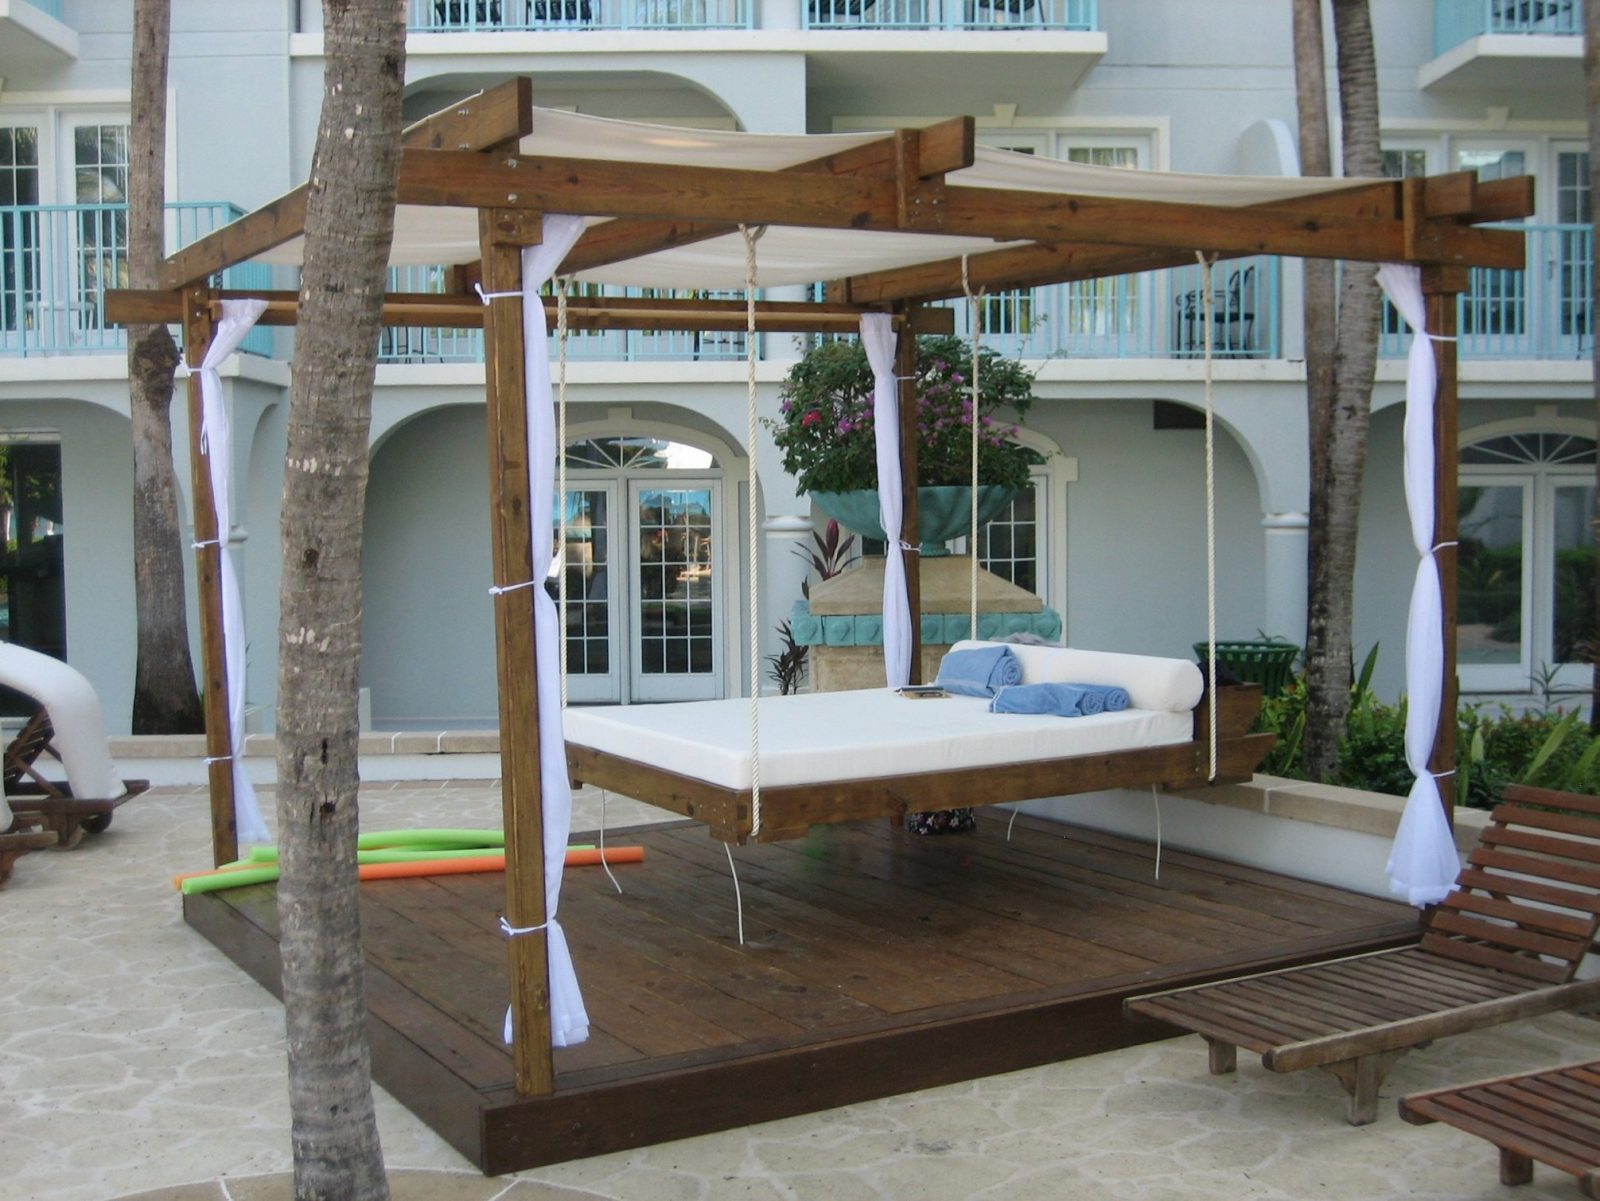 Unlock Round Hanging Bed Swinging Porch Beds Outstanding Swing Home For von Round Porch Swing Bed Bild